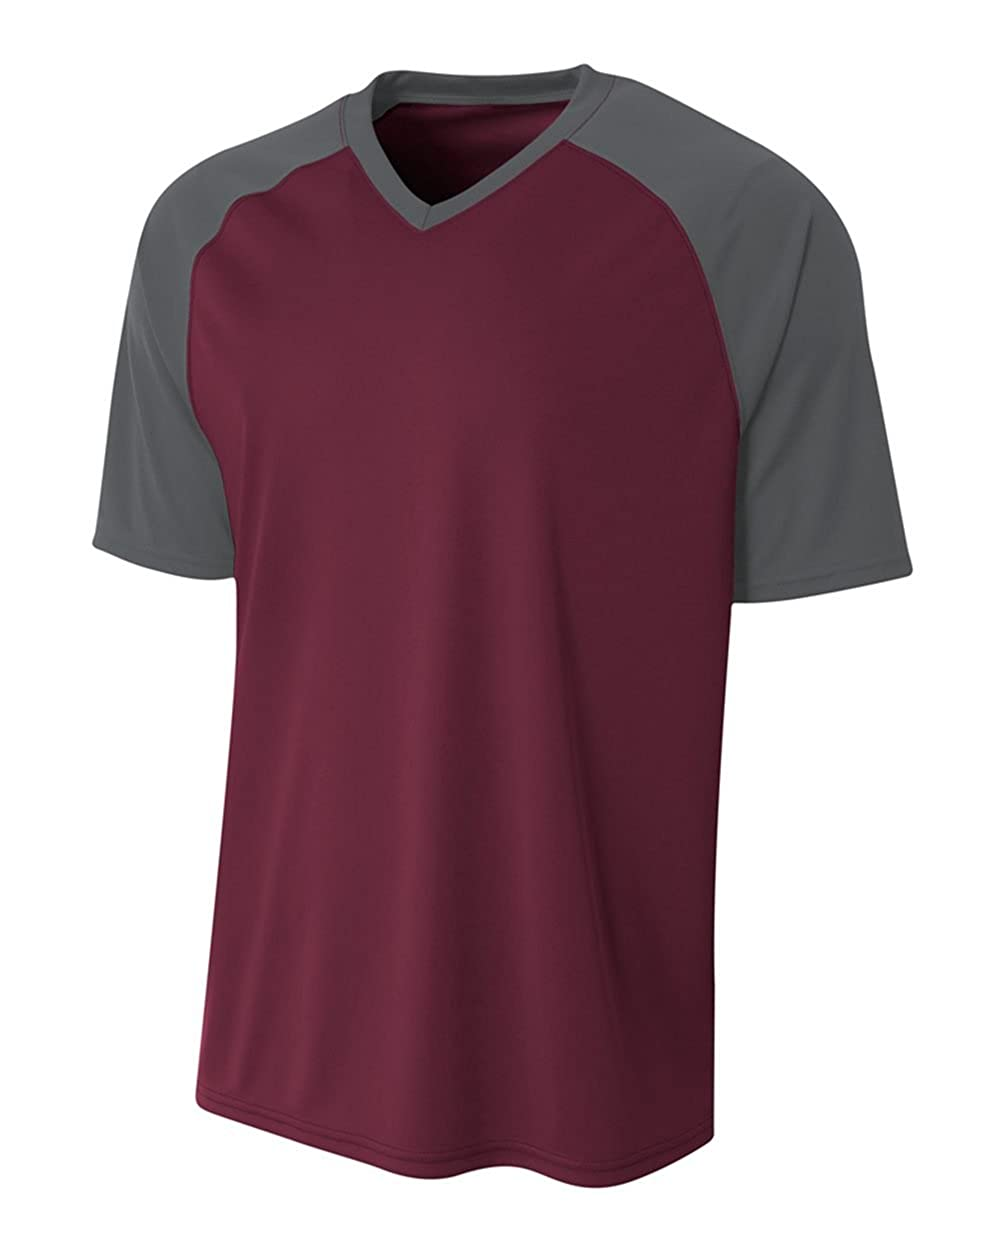 Baseball, Softball, Soccer, Lacrosse, Flag Football/…14 Color Combos CUSTOM or Blank in Youth /& Adult Sizes NEW Color Combo All Season Comfort Sports Jerseys